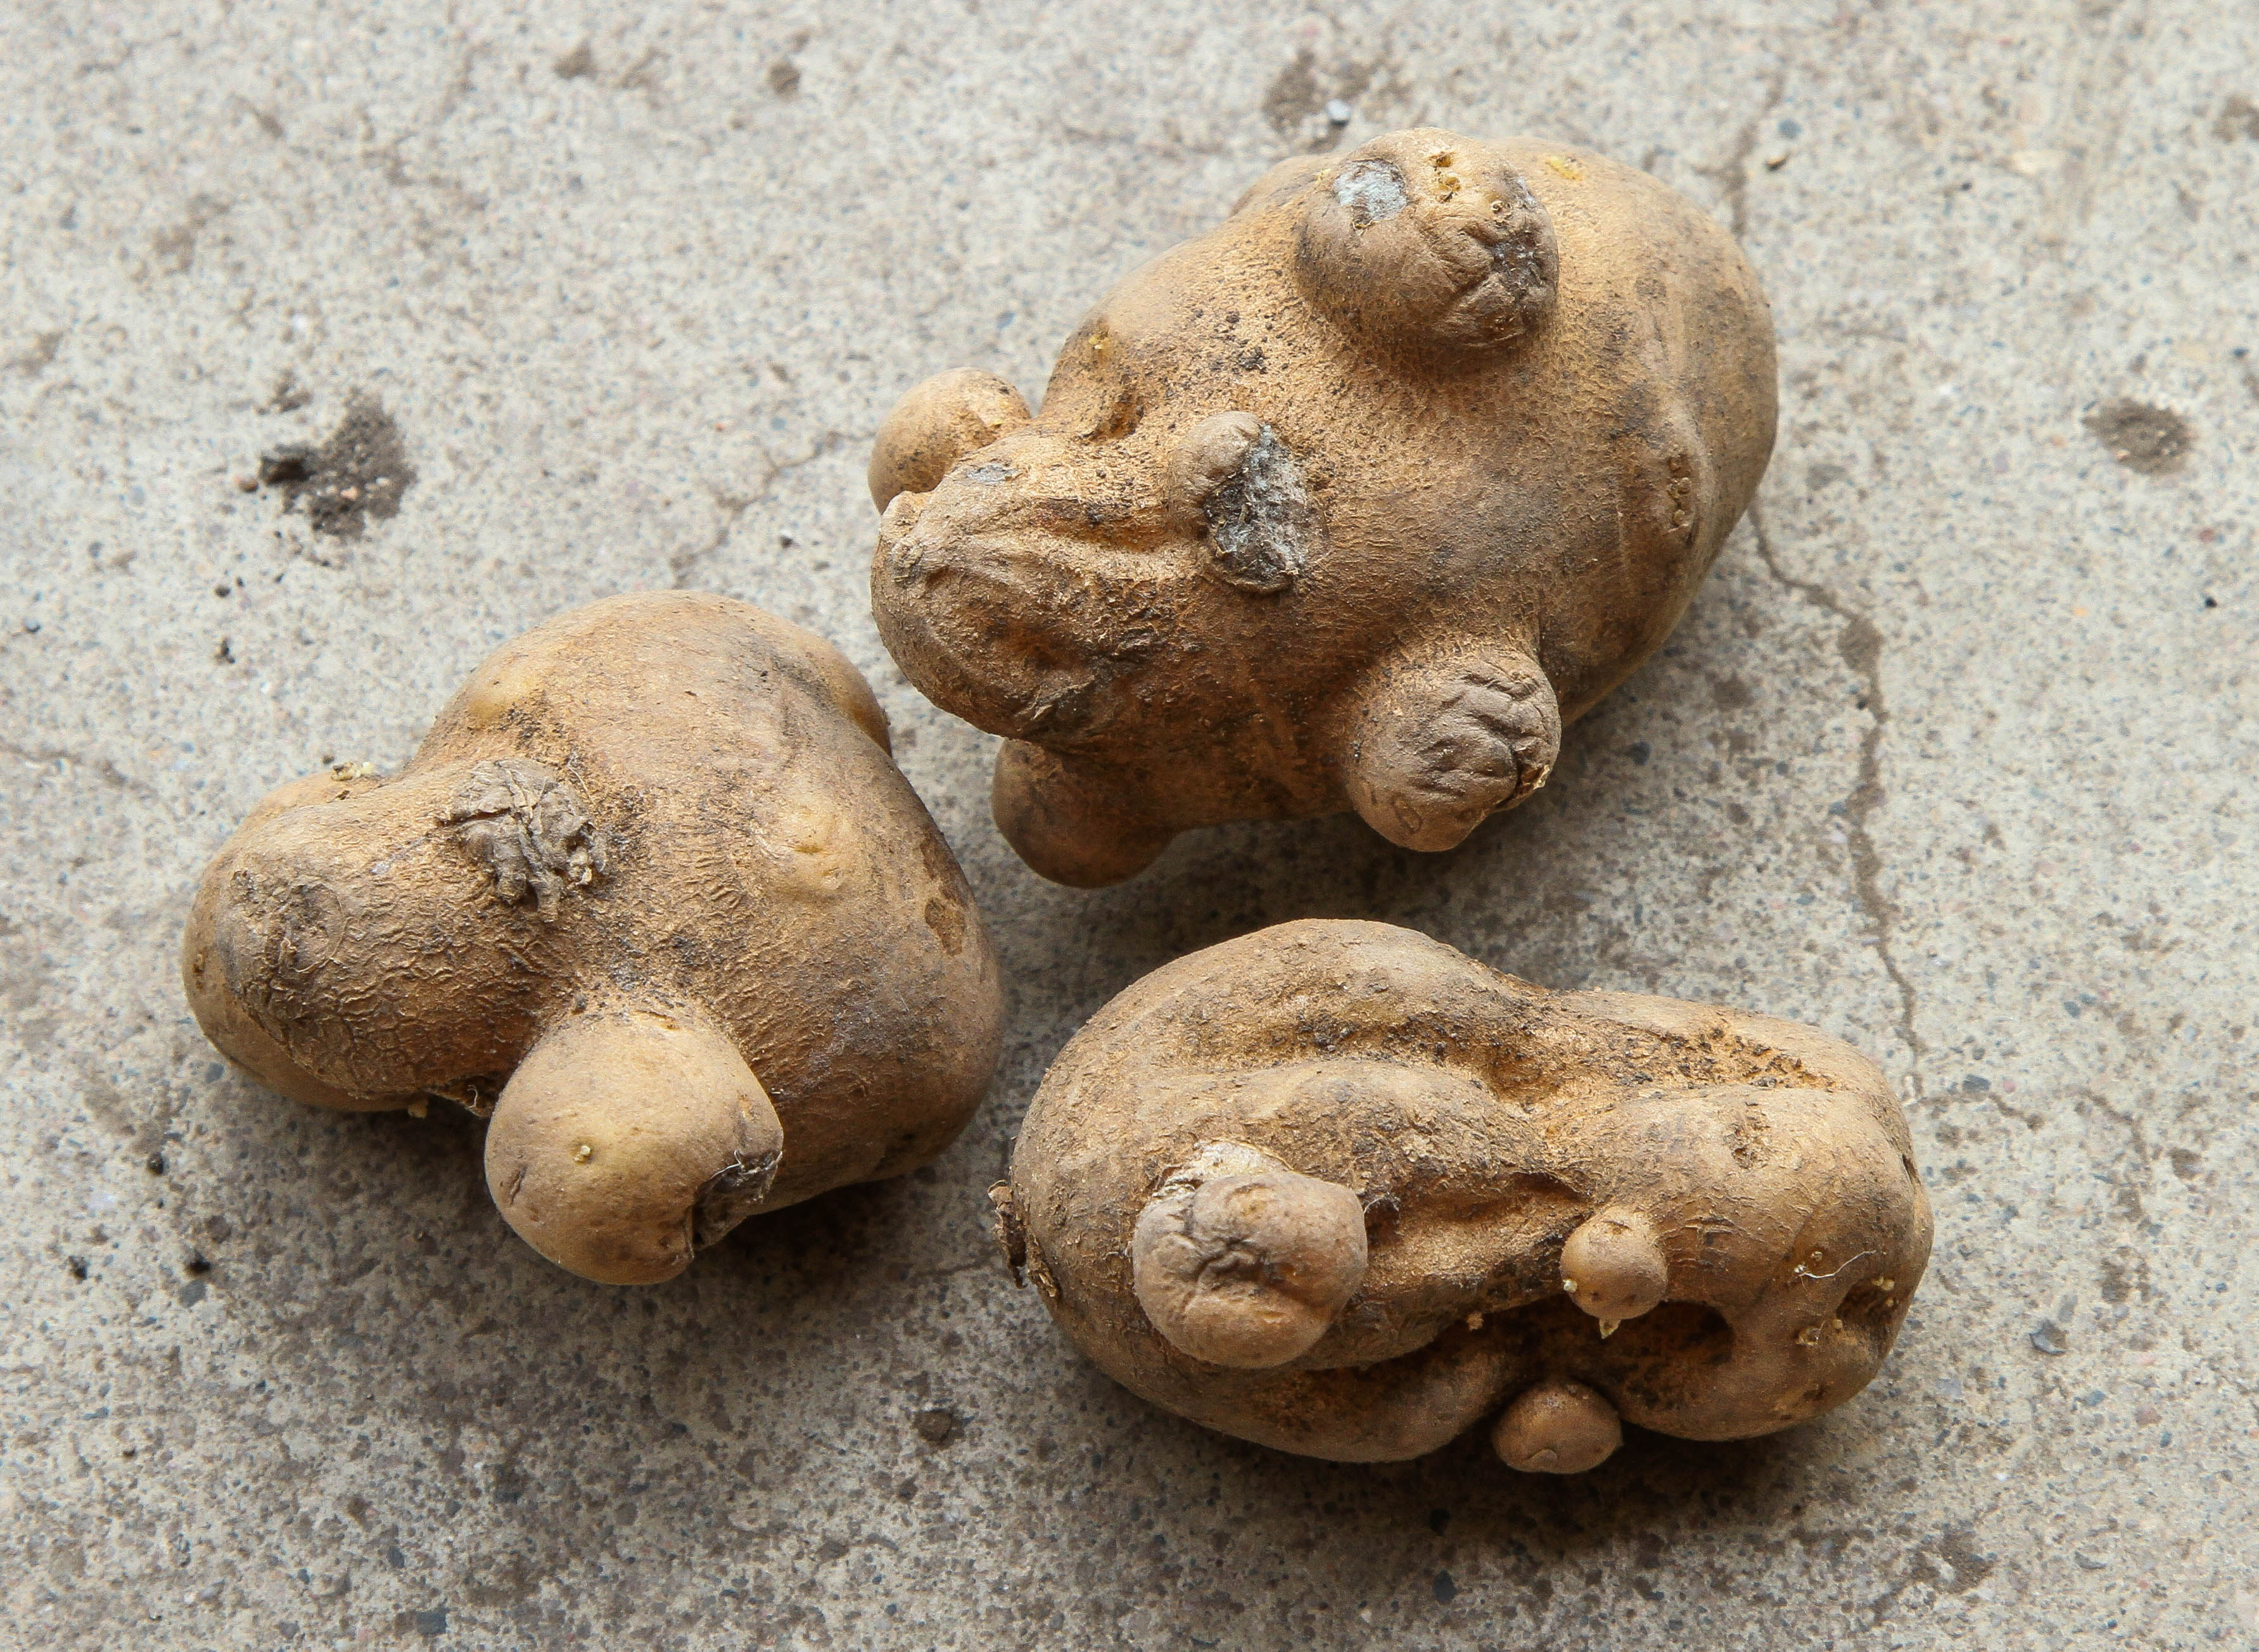 Avoiding Herbicide Damage in Seed Potatoes